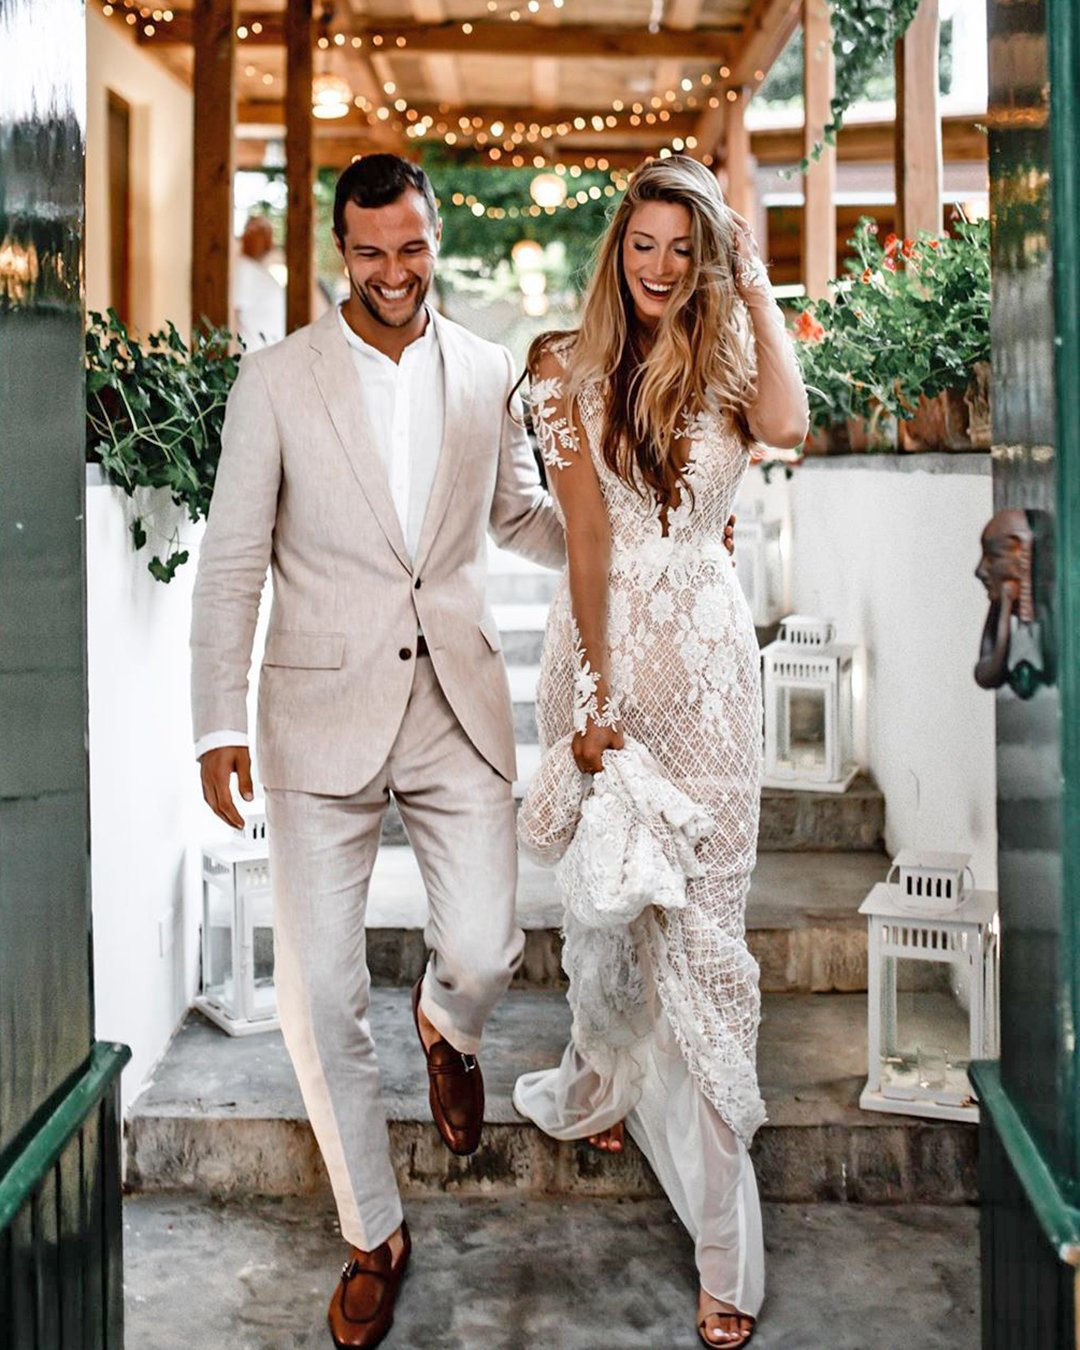 groom suits white jacket casual stylish country tali photography